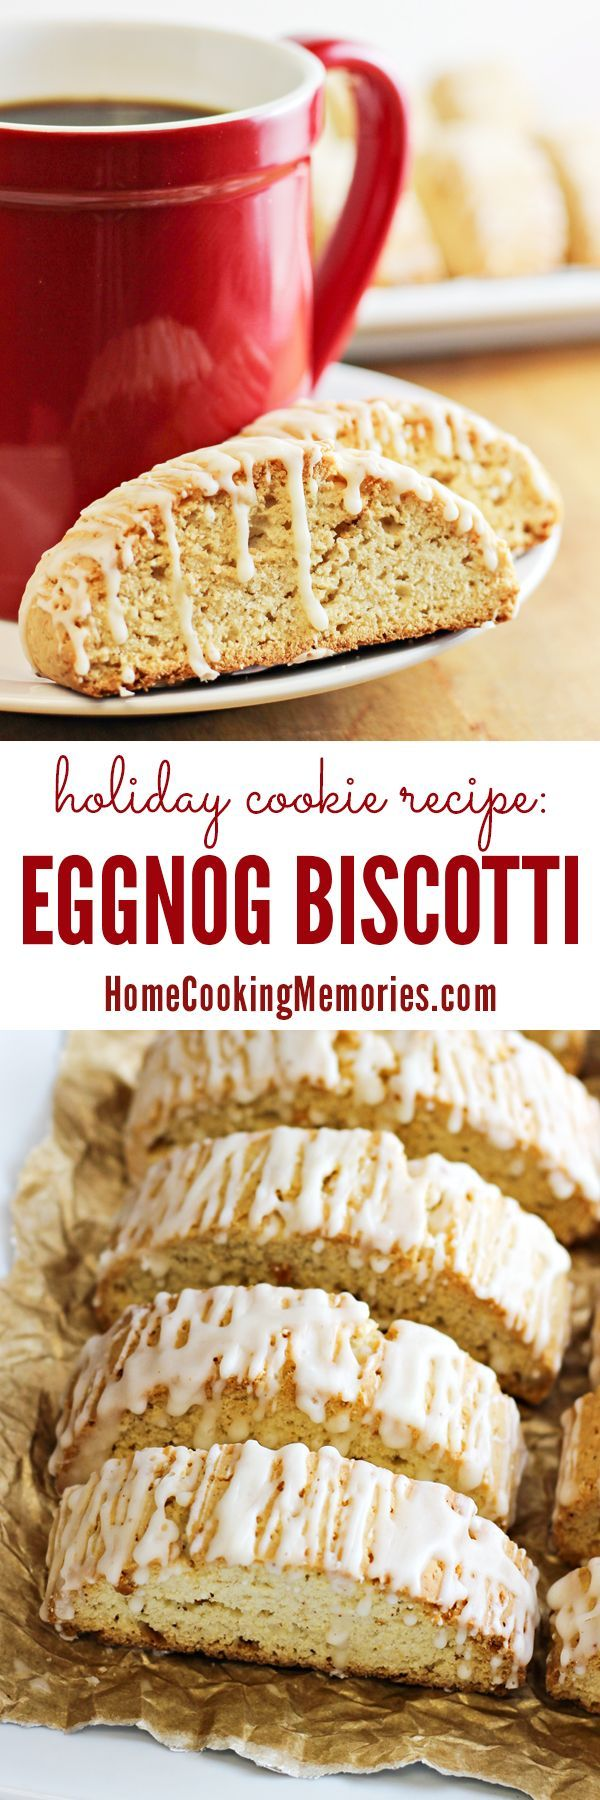 'Tis the season for this delicious Eggnog Biscotti recipe! A crispy holiday cookie recipe that's great for pairing with a cup of coffee, tea, or hot chocolate.